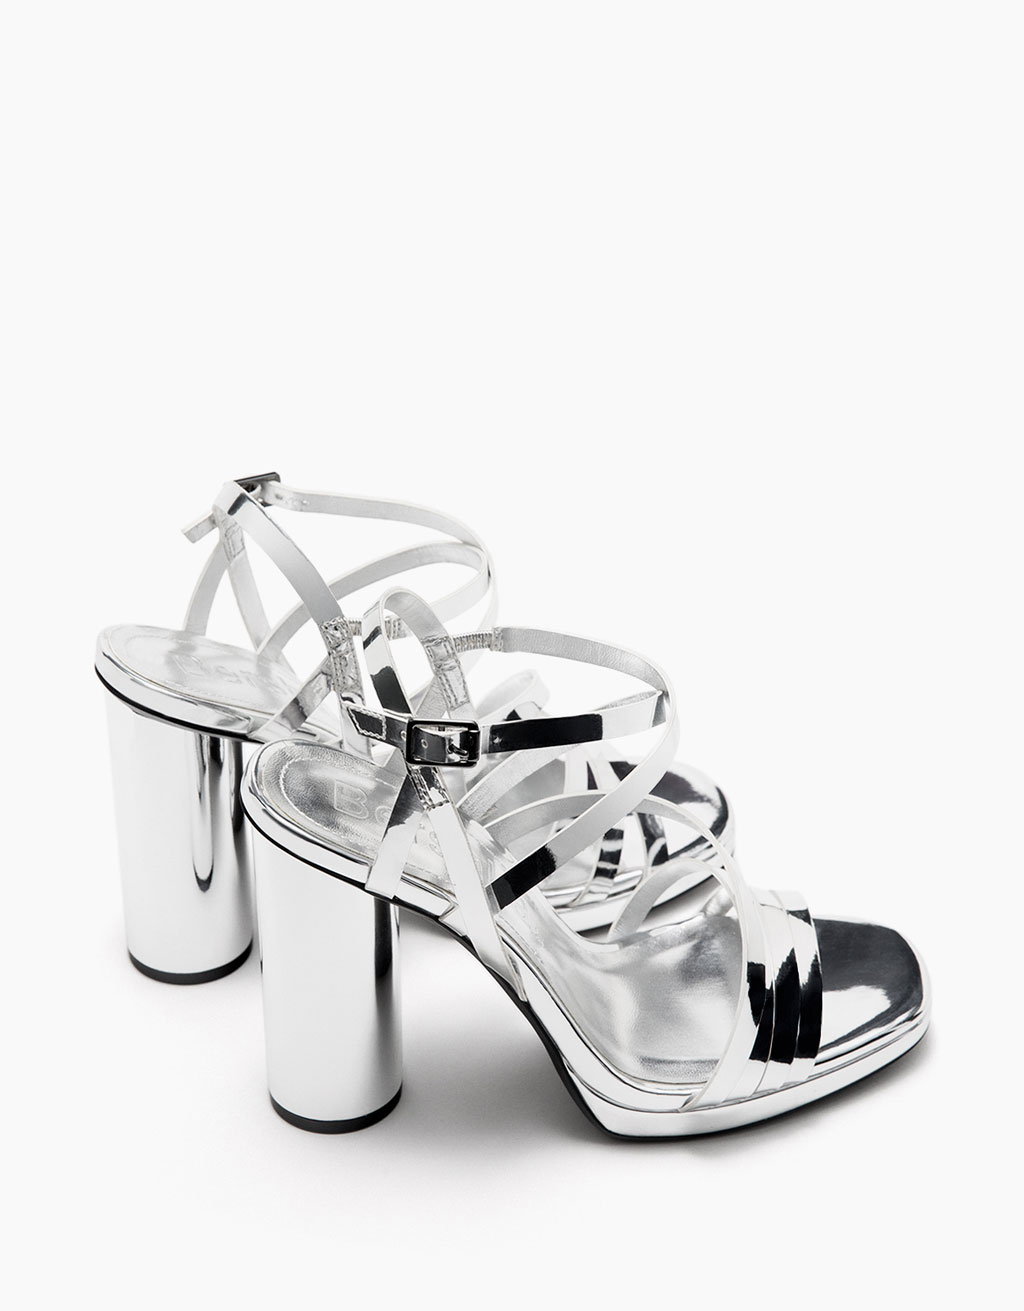 High heel platform sandals with metallic straps